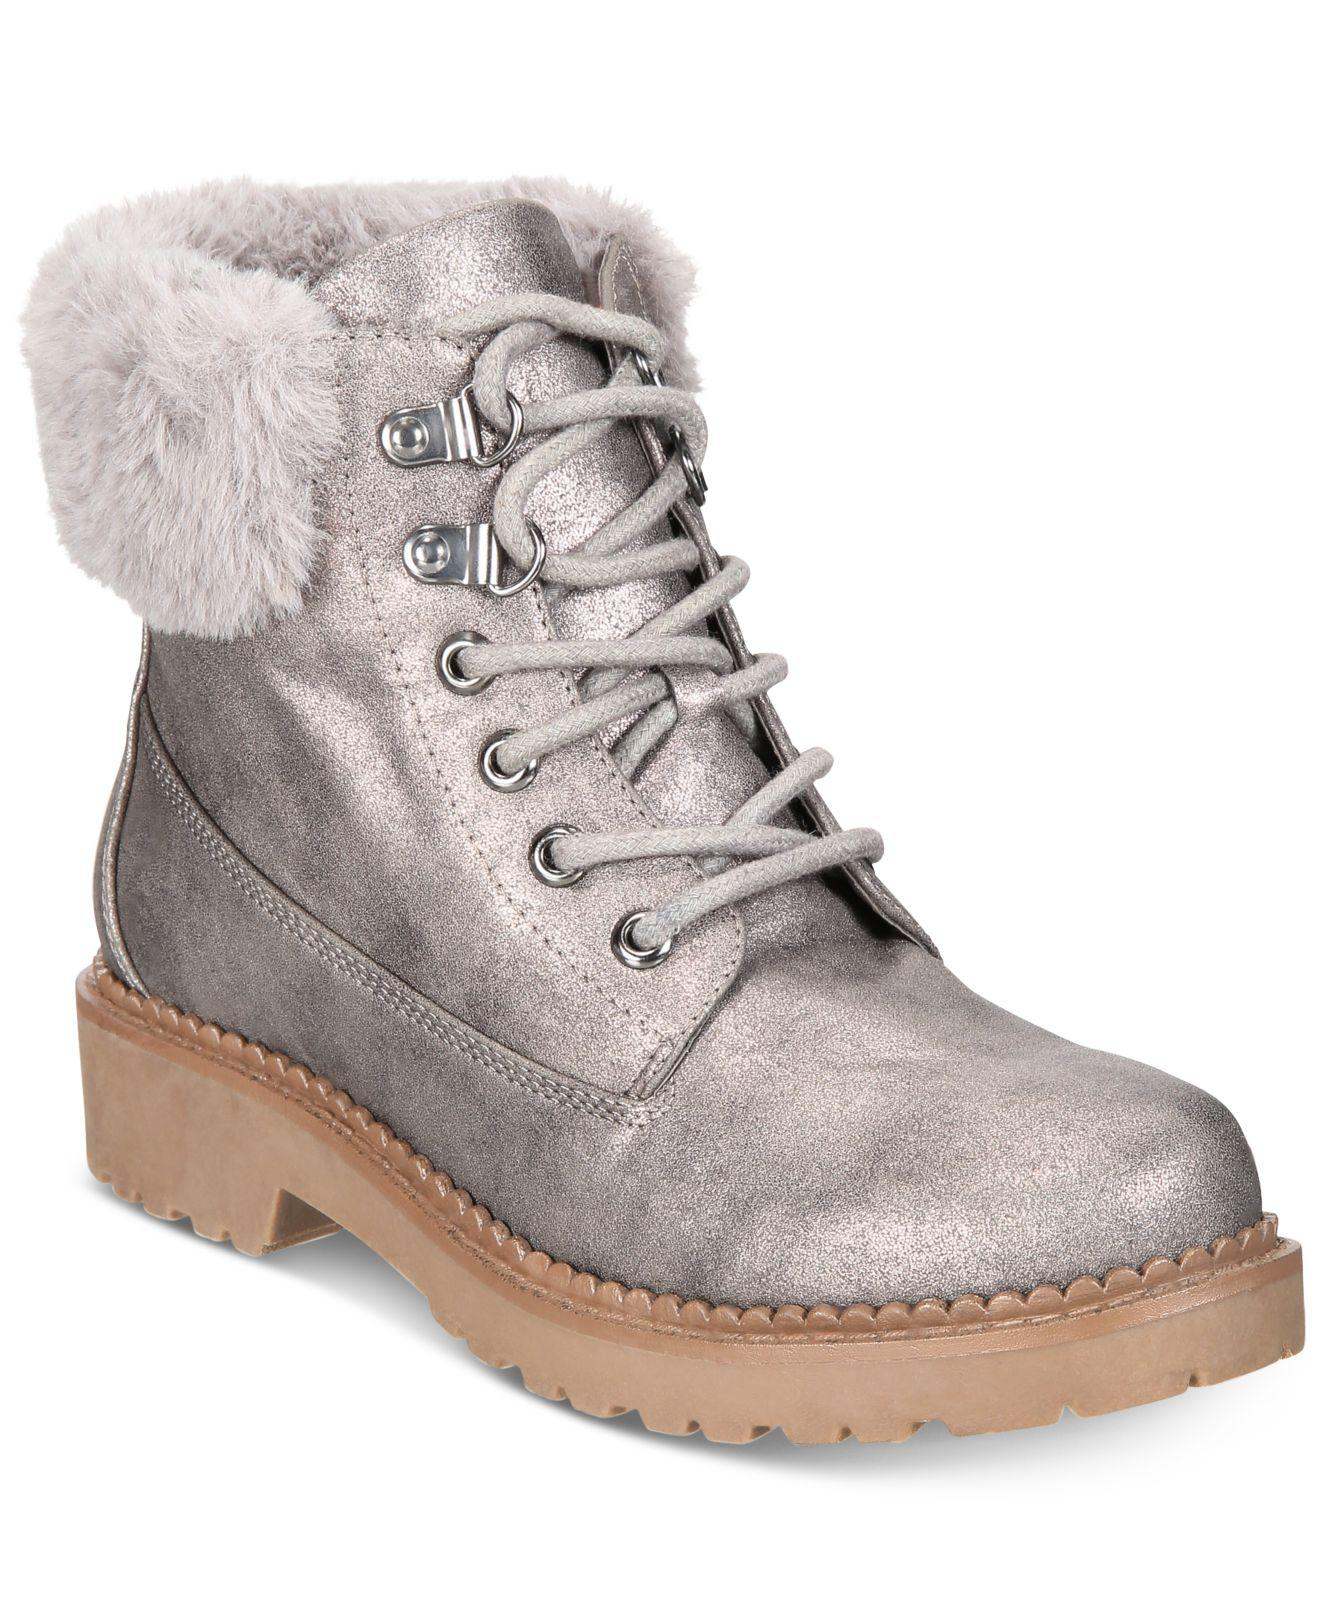 8ec48795c1fe Esprit Chelsea Memory-foam Cold-weather Boots in Gray - Lyst